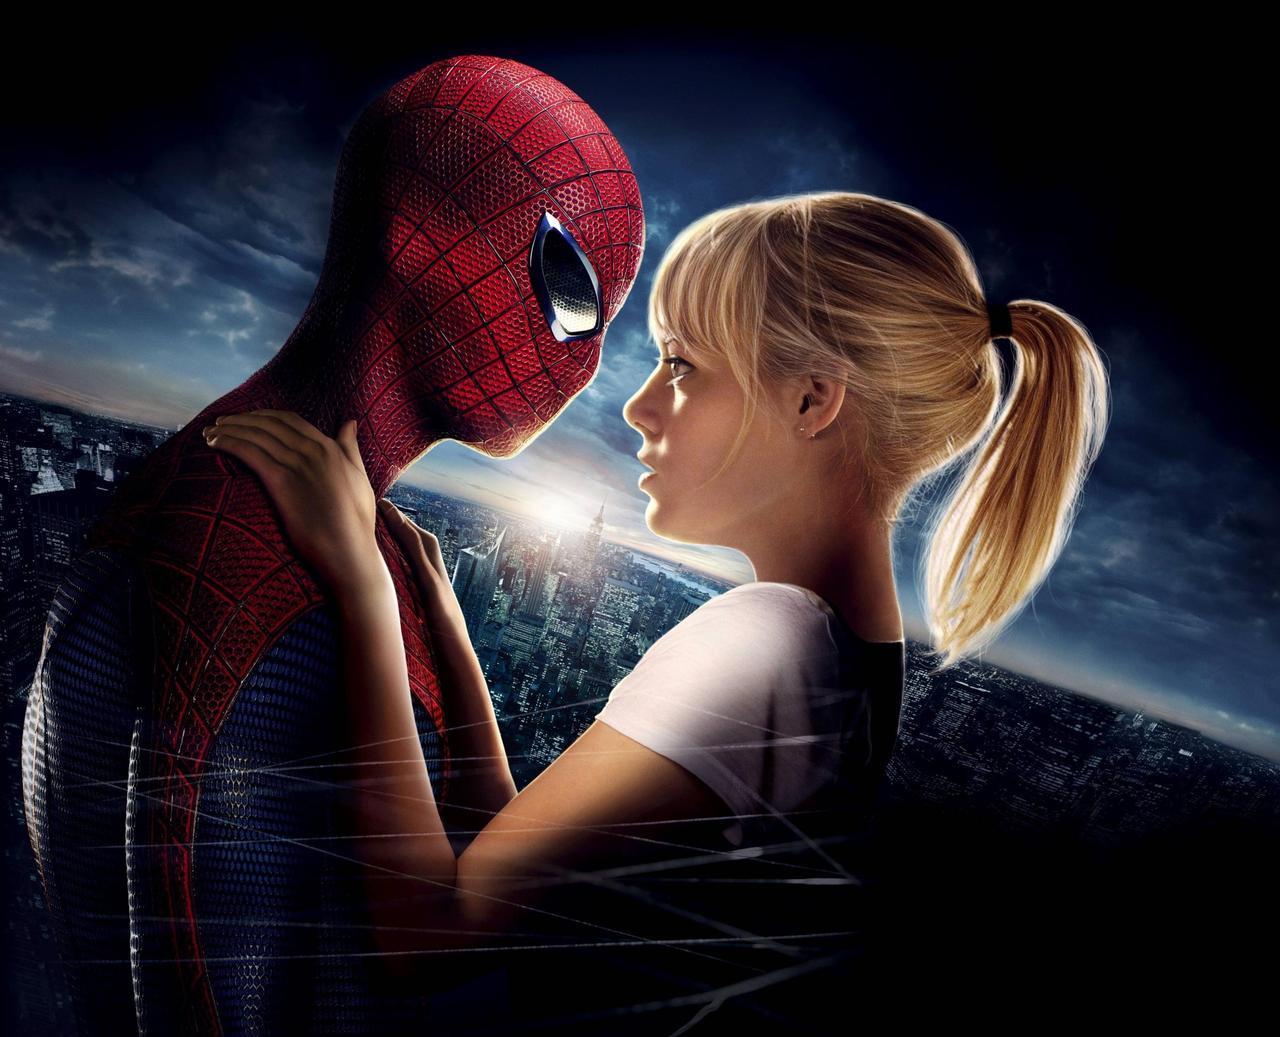 NEW Wallpaper for 'THE AMAZING SPIDER-MAN!!!'